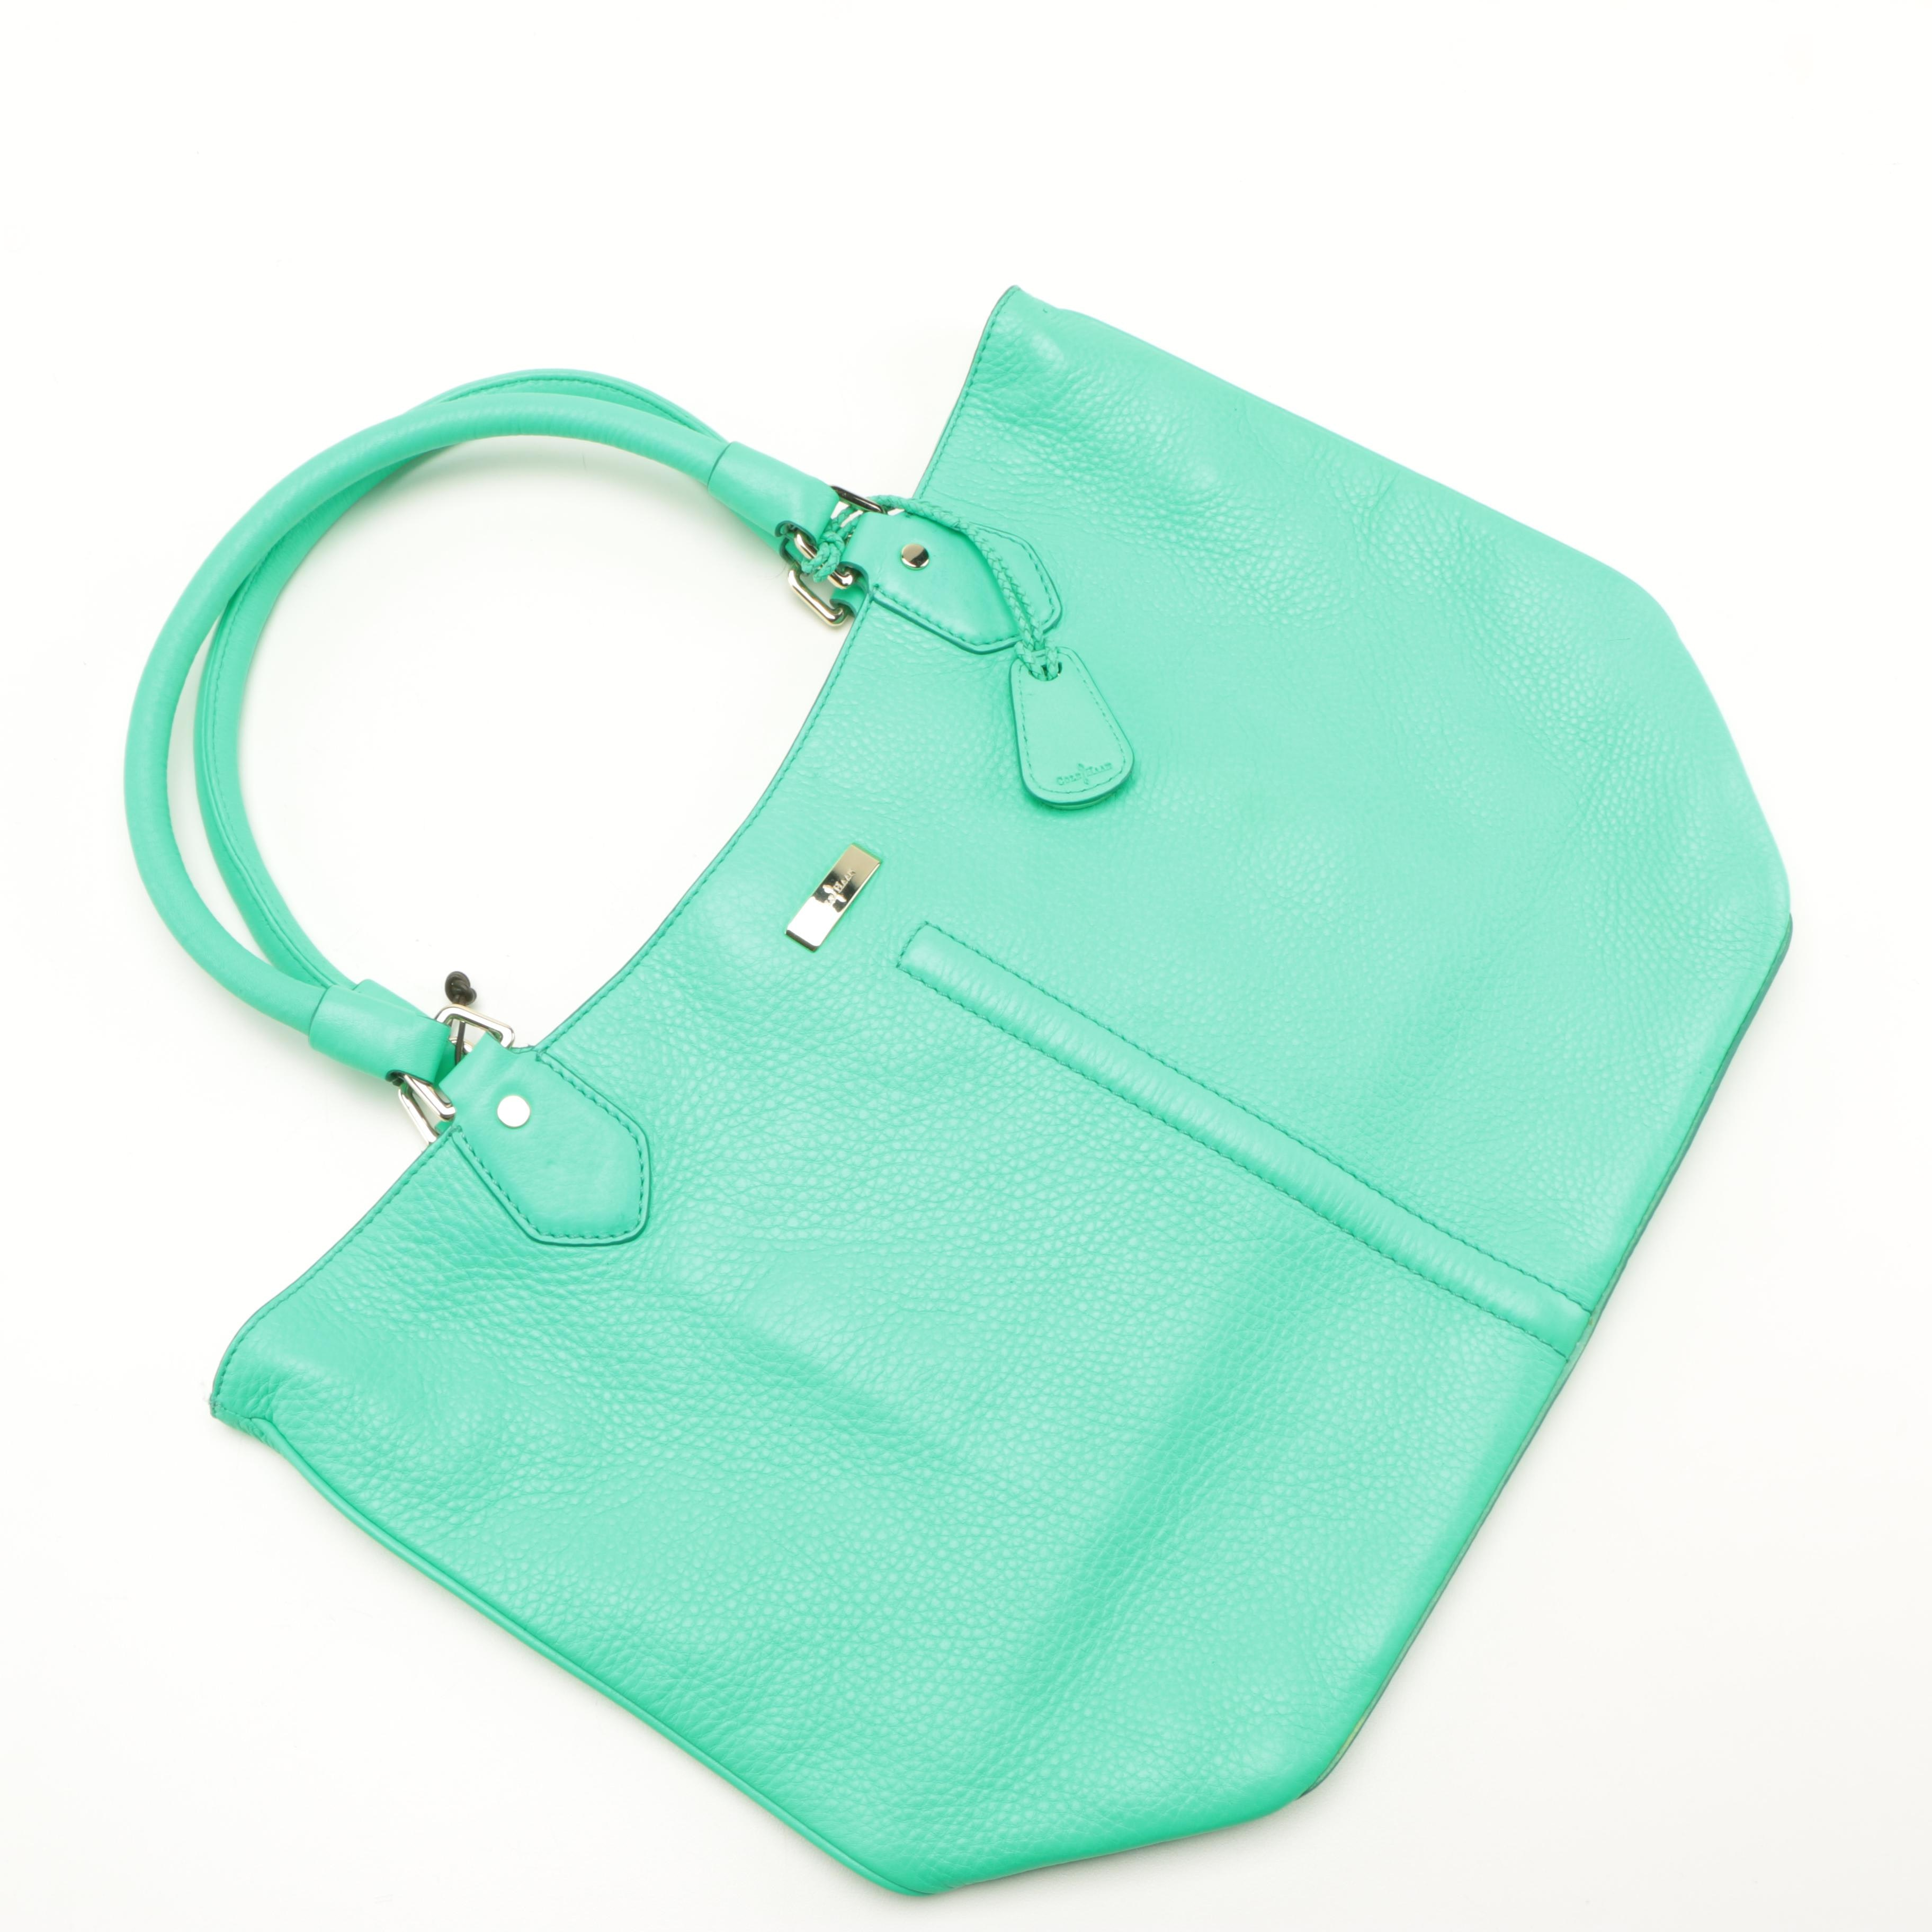 Cole Haan Serena Mint Leather Tote